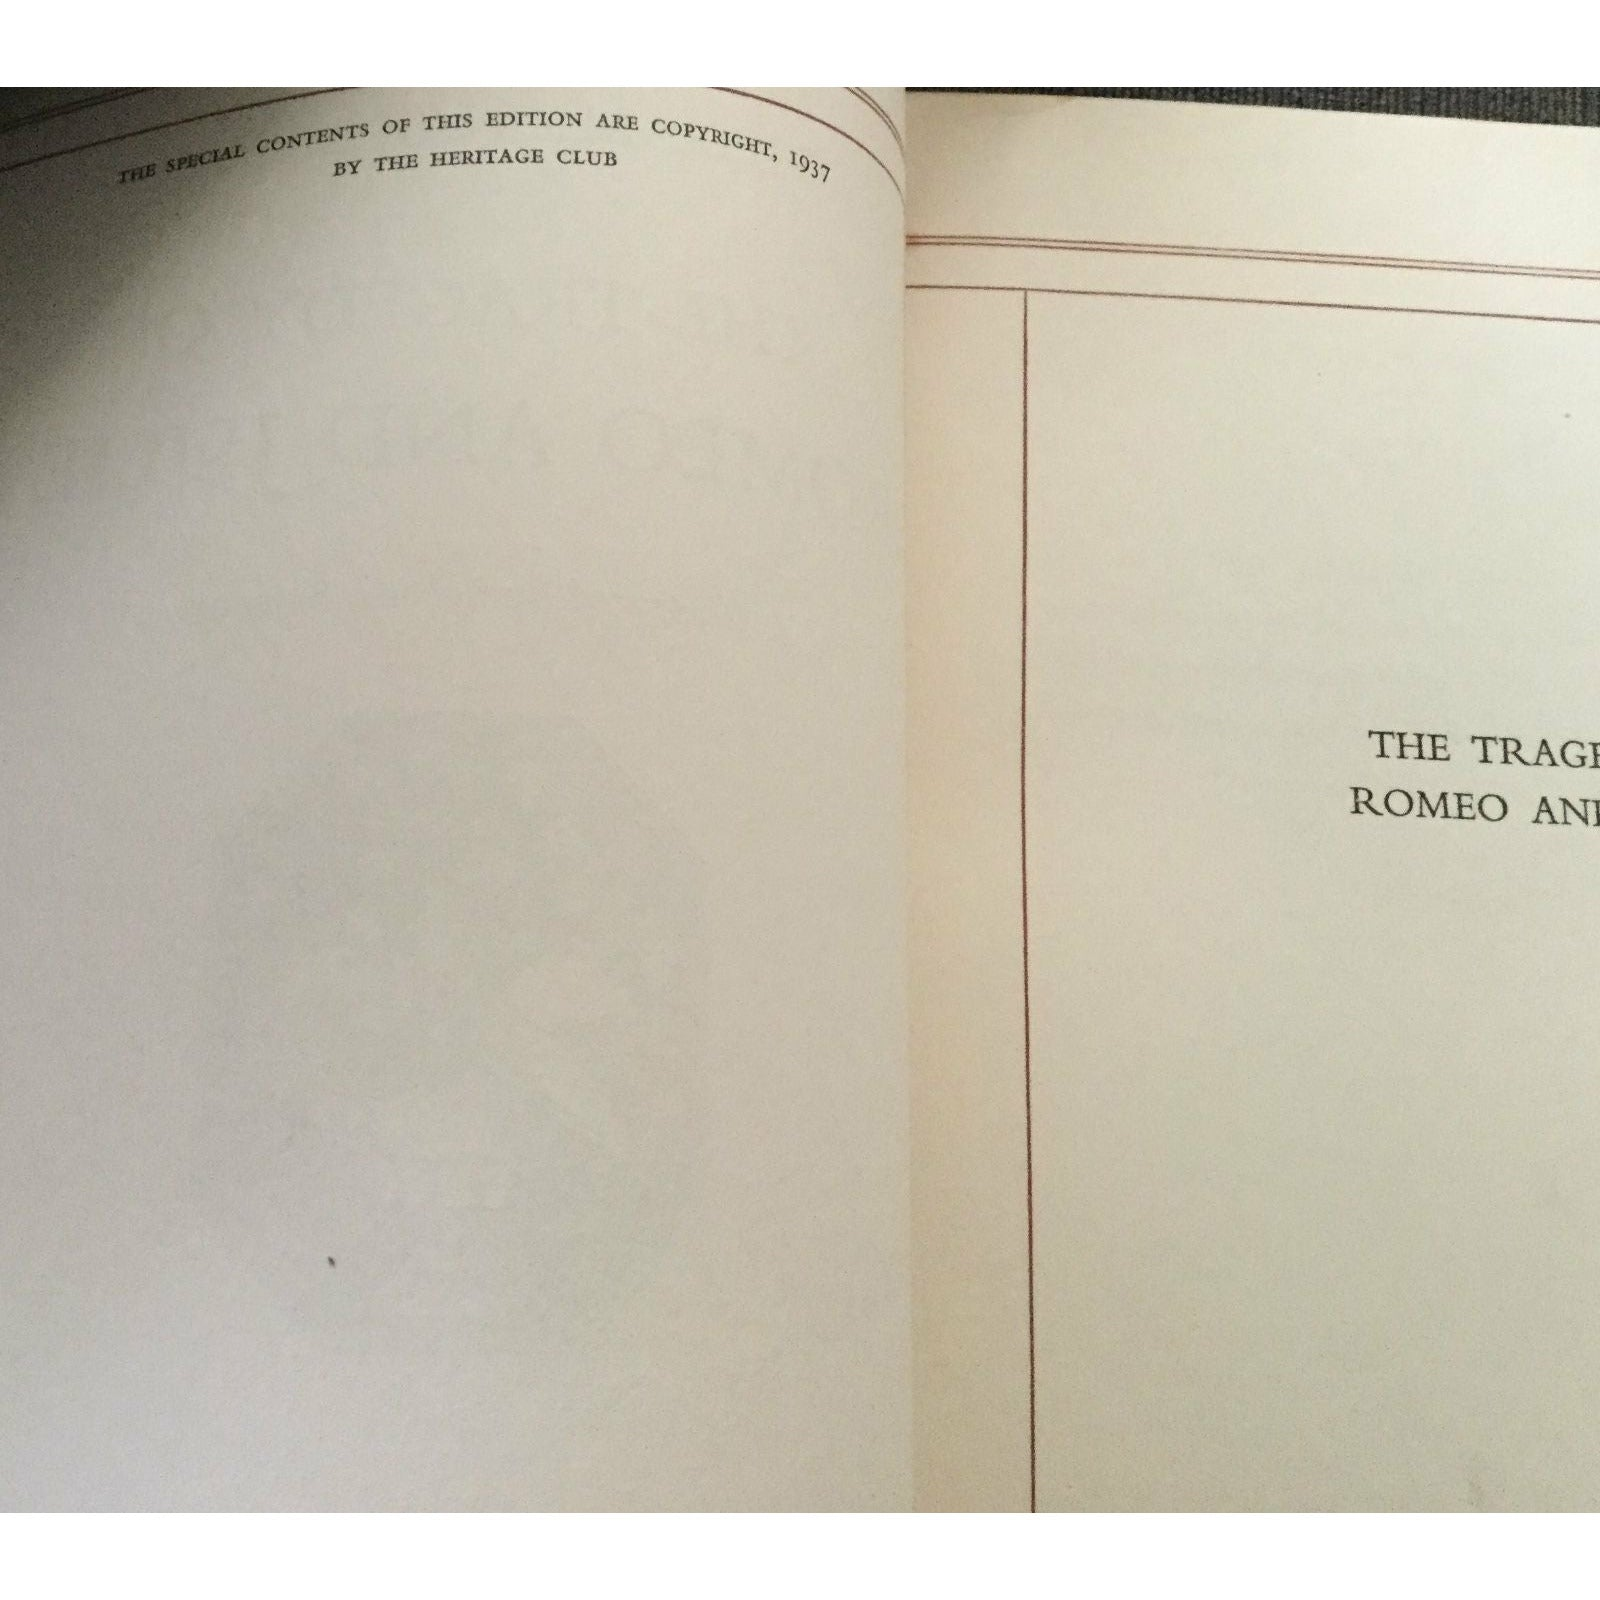 The Tragedy Of Romeo & Juliet, by Shakespeare - 1937 - Limited Edition H-C Book